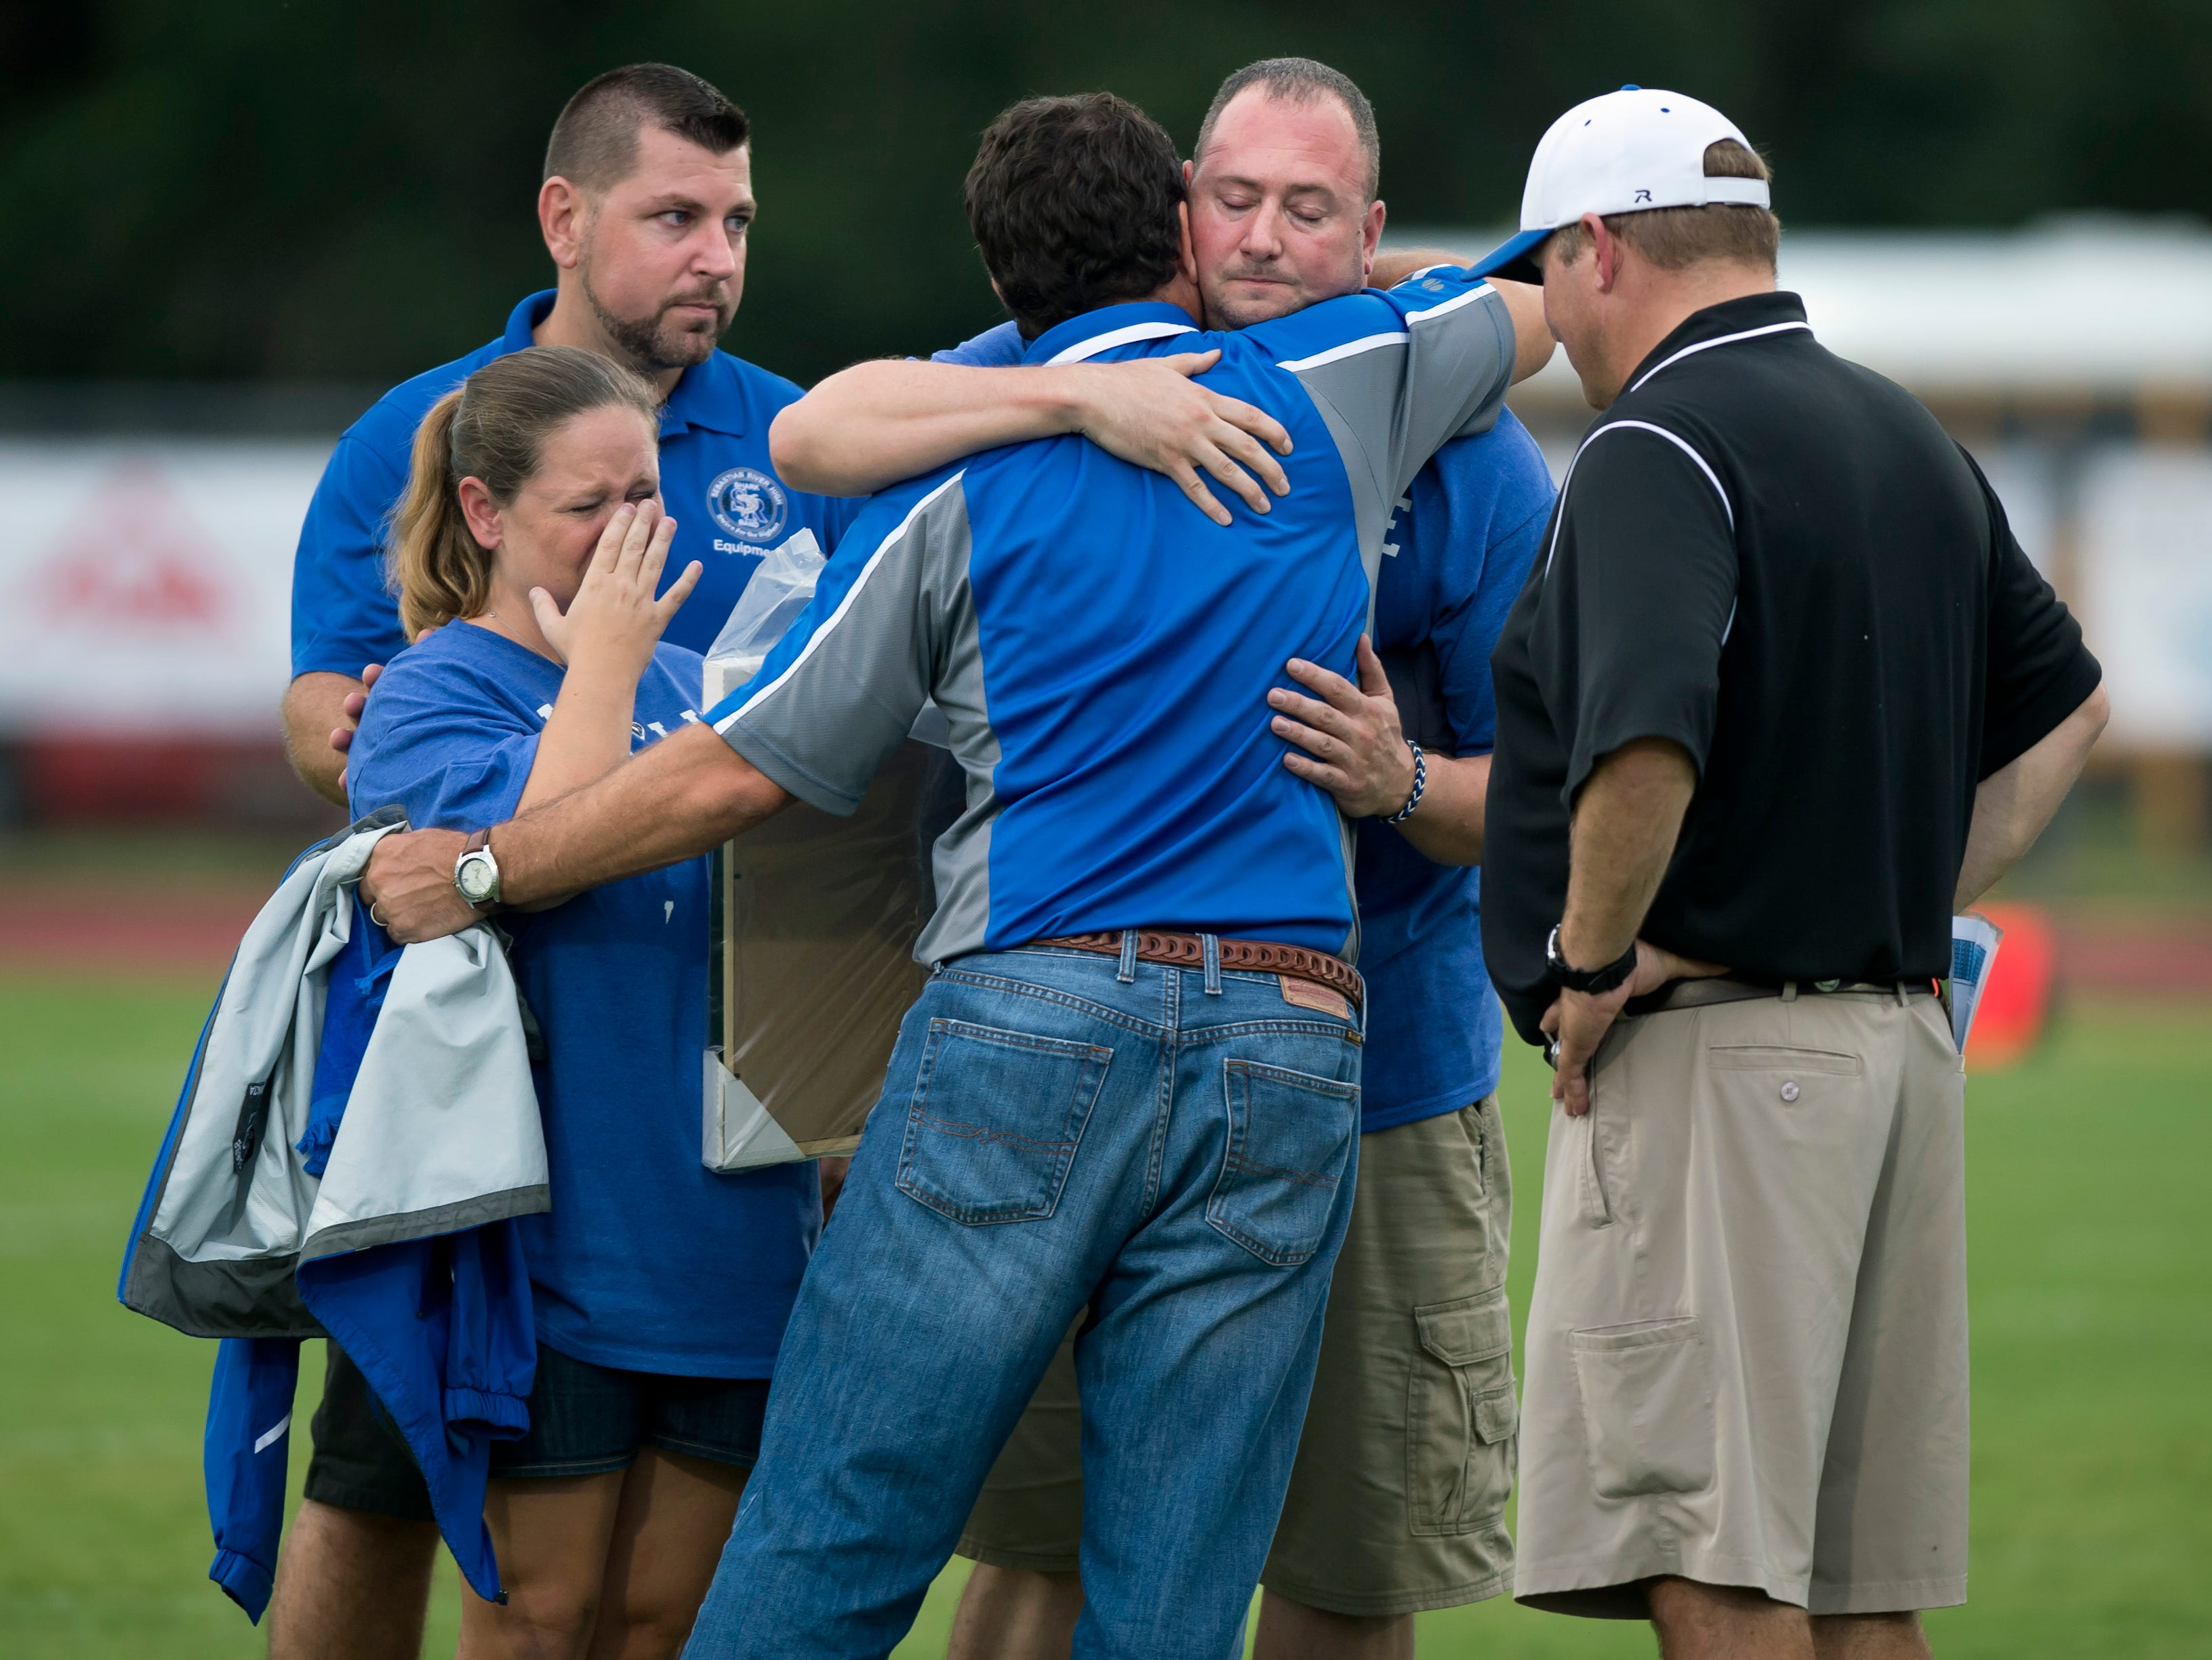 "William Shogran (second from right) receives a hug from Sebastian River High School principal Todd Racine (center) after Shogran and his wife Courtney were presented with a plaque and football prior to the start of the Sharks' game against Fort Pierce Westwood. The Showgrans' son, William Shogran, Jr., 14, died while practicing with the football team at Camp Blanding, a military base in Starke in north Florida, on August 13. ""We just wanted to show (the team) that we're here for them,"" said Courtney. Jim Adams, youth pastor at Sebastian Christian Church, stands at left and football coach Kevin Pettis stands at right. (SAM WOLFE/TREASURE COAST NEWSPAPERS)"